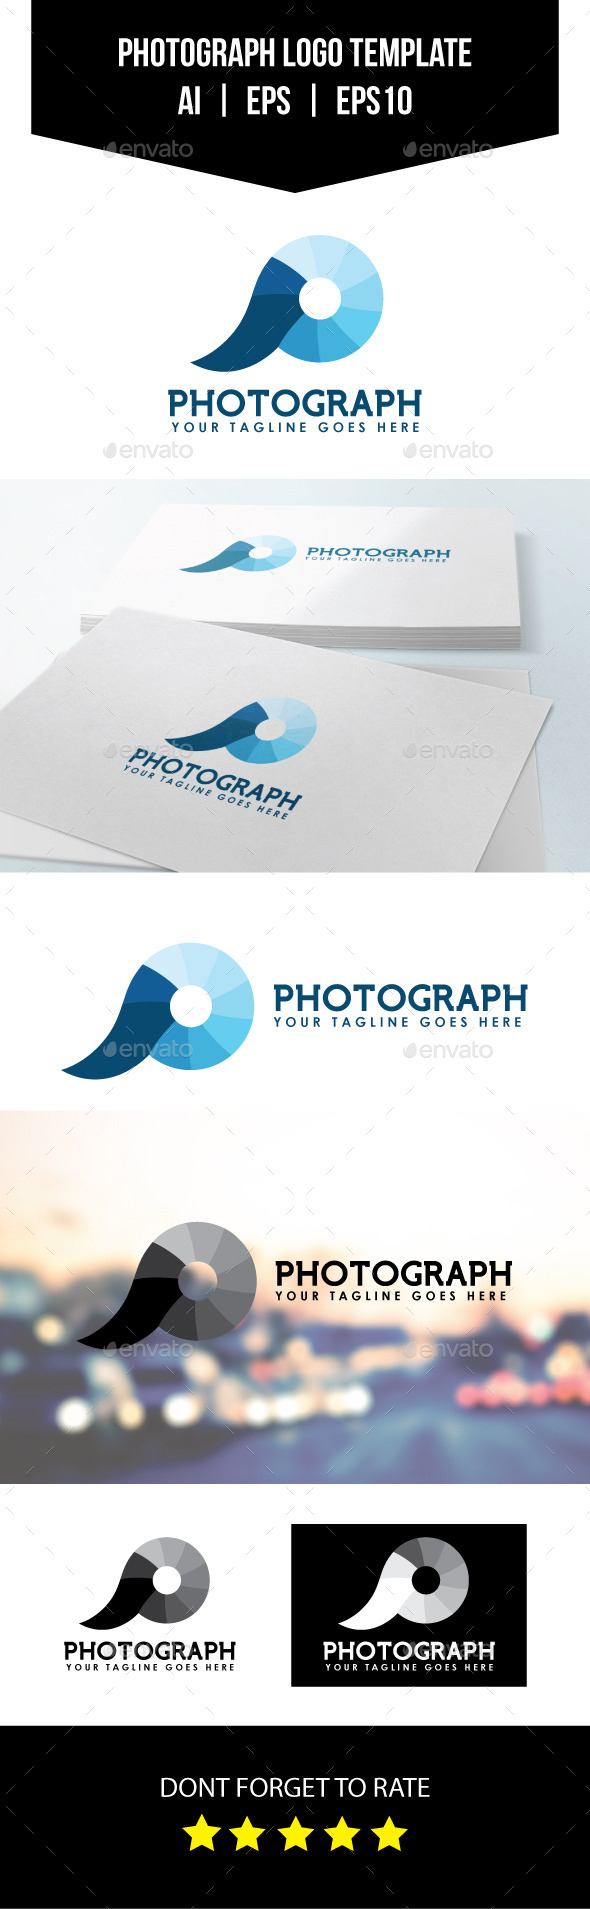 GraphicRiver Photograph Logo Template 10914132